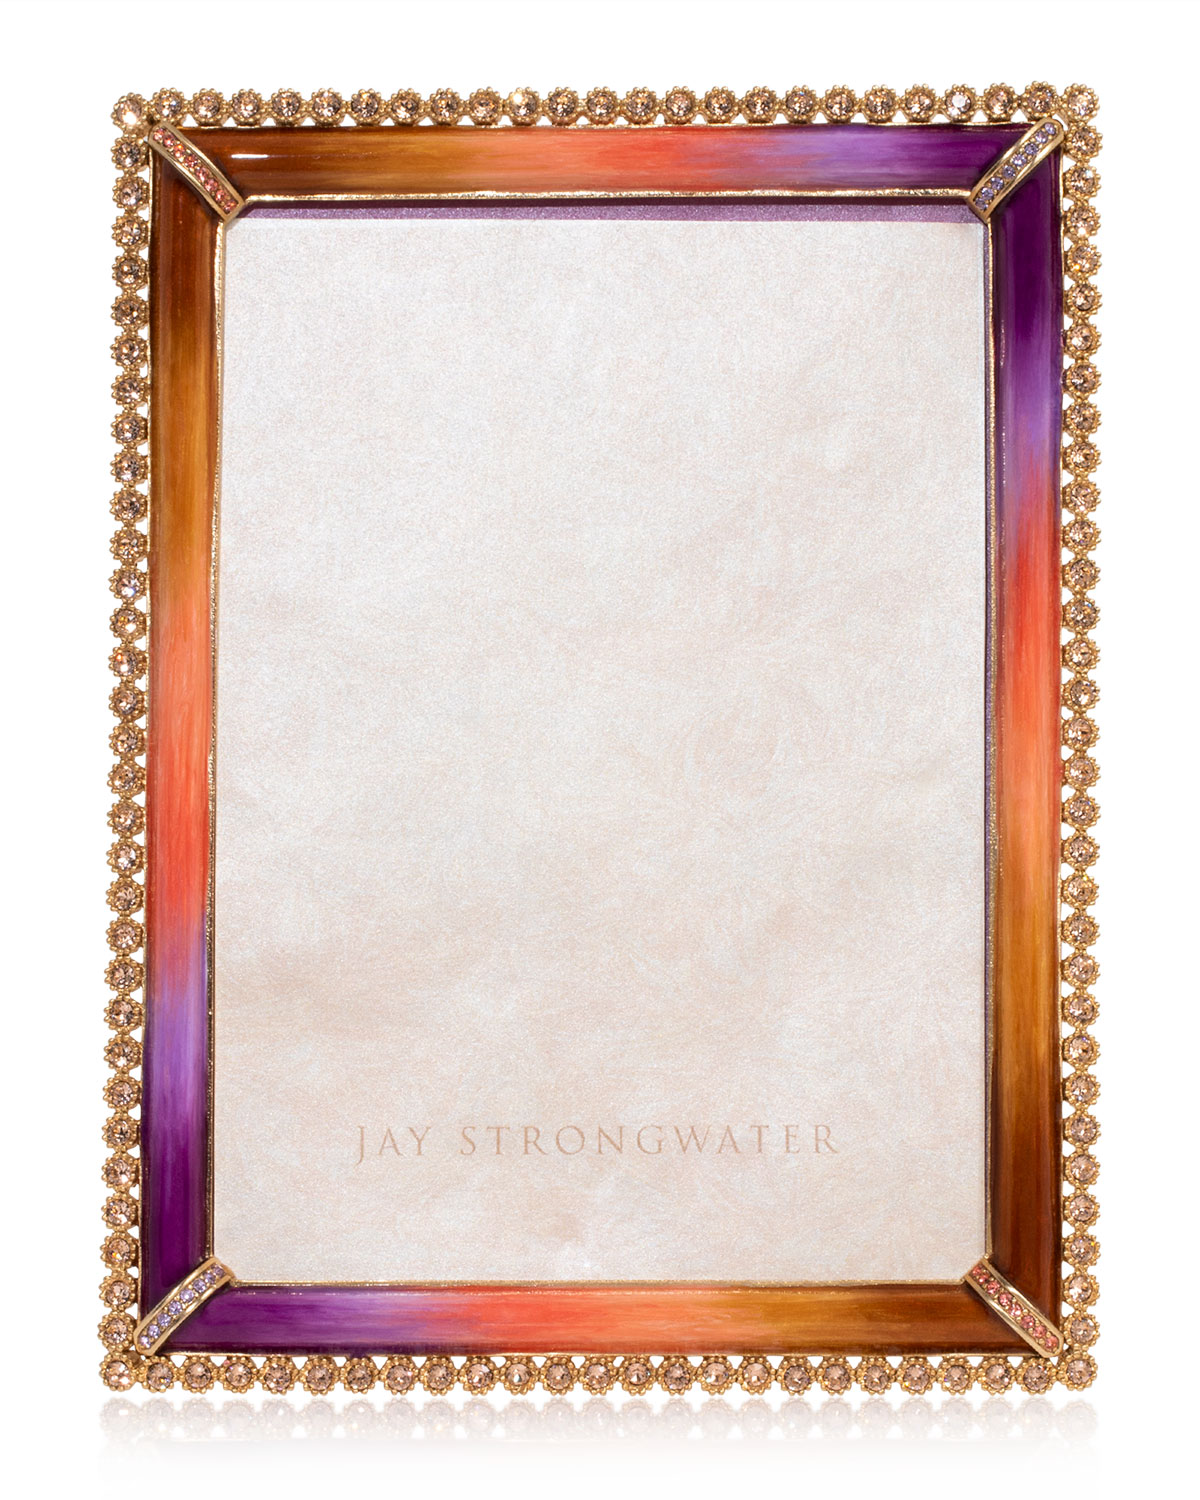 "Jay Strongwater STONE EDGE PICTURE FRAME, 5"" X 7"""